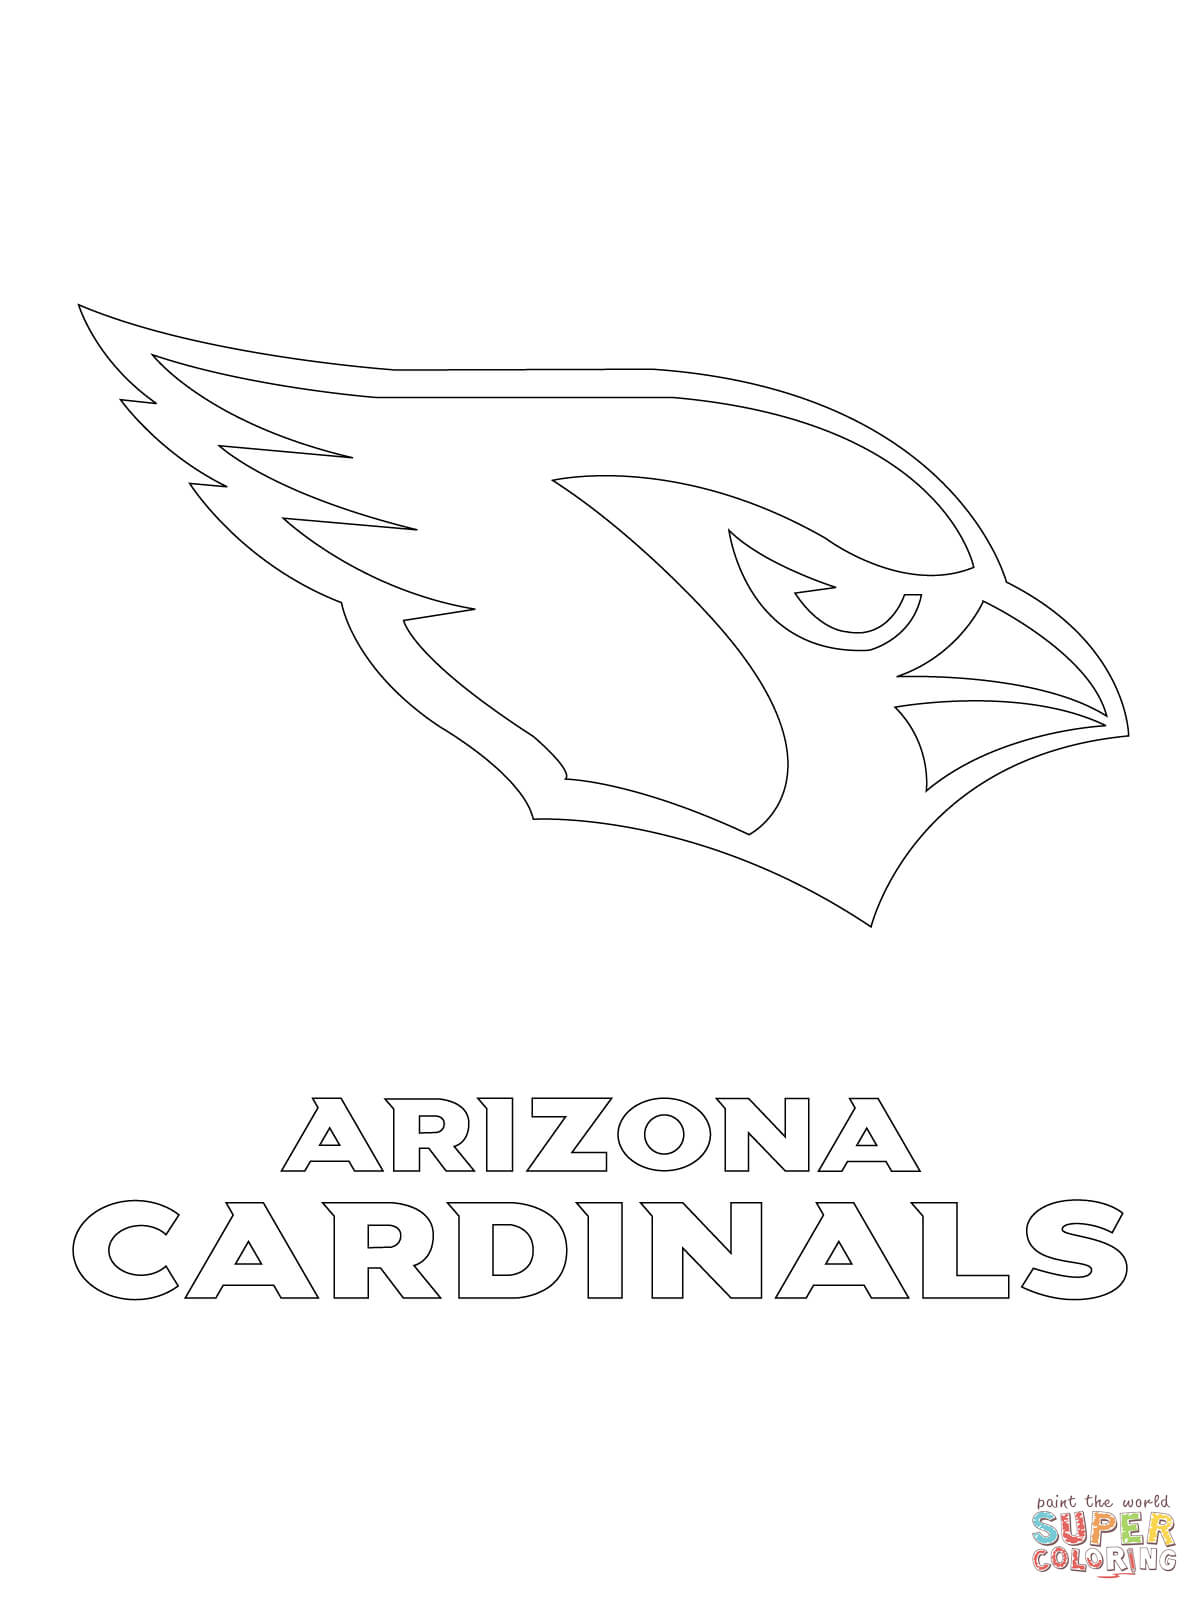 Arizona Cardinals Coloring Pages  Printable 14o - Free For Children